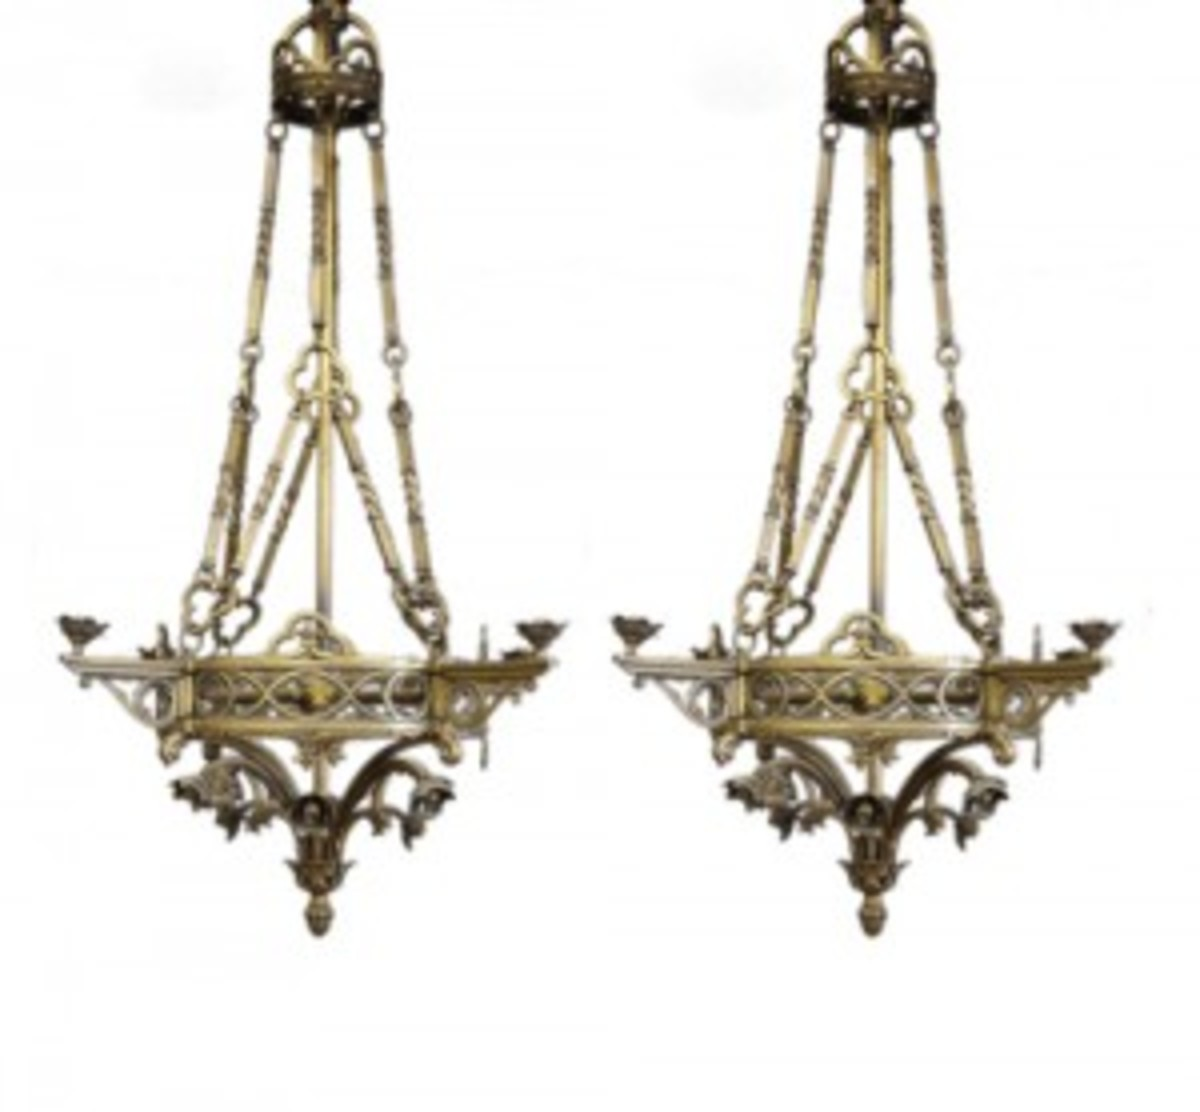 Gothic Revival chandeliers